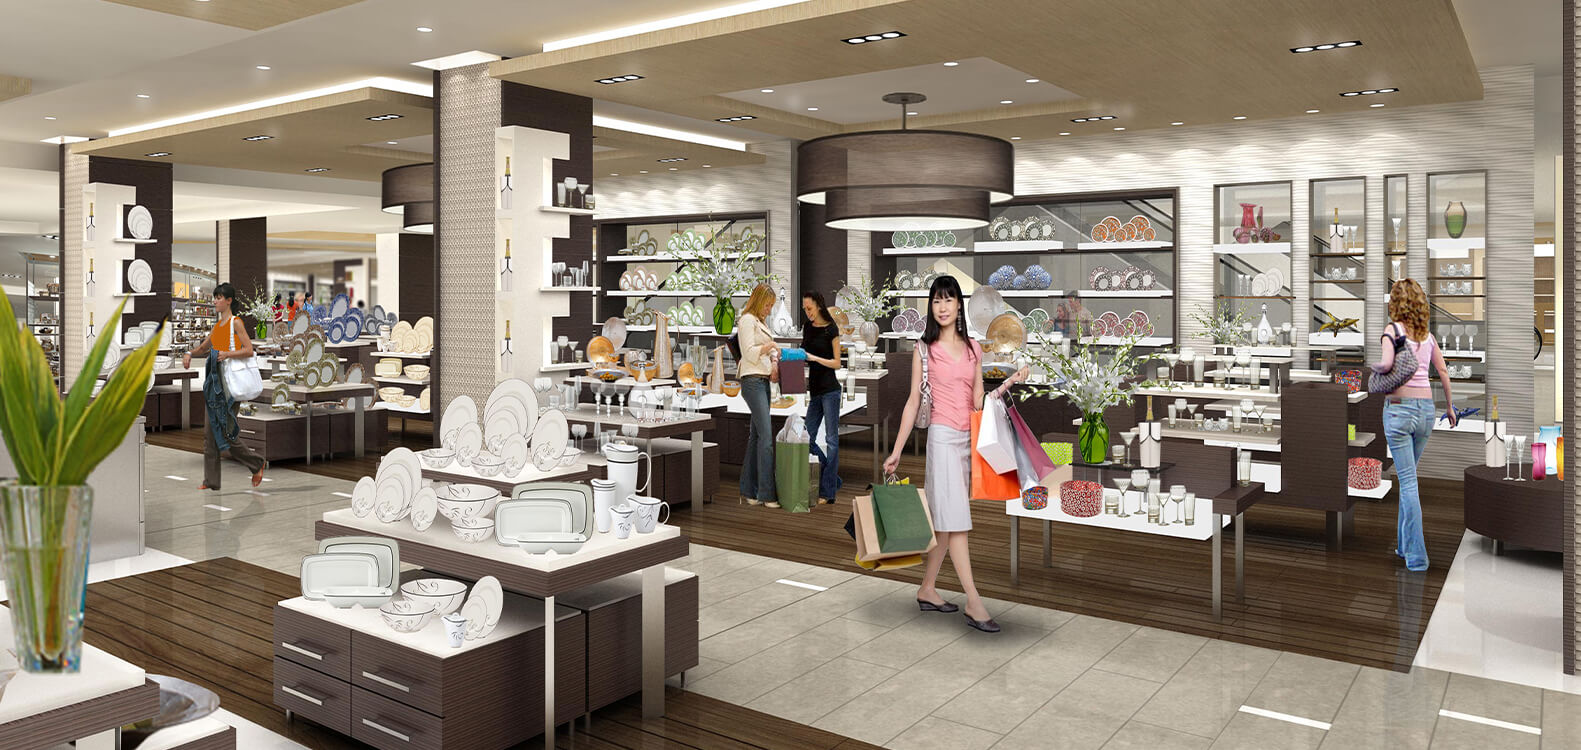 Hyundai Soul Mall Tableware, S. Korea